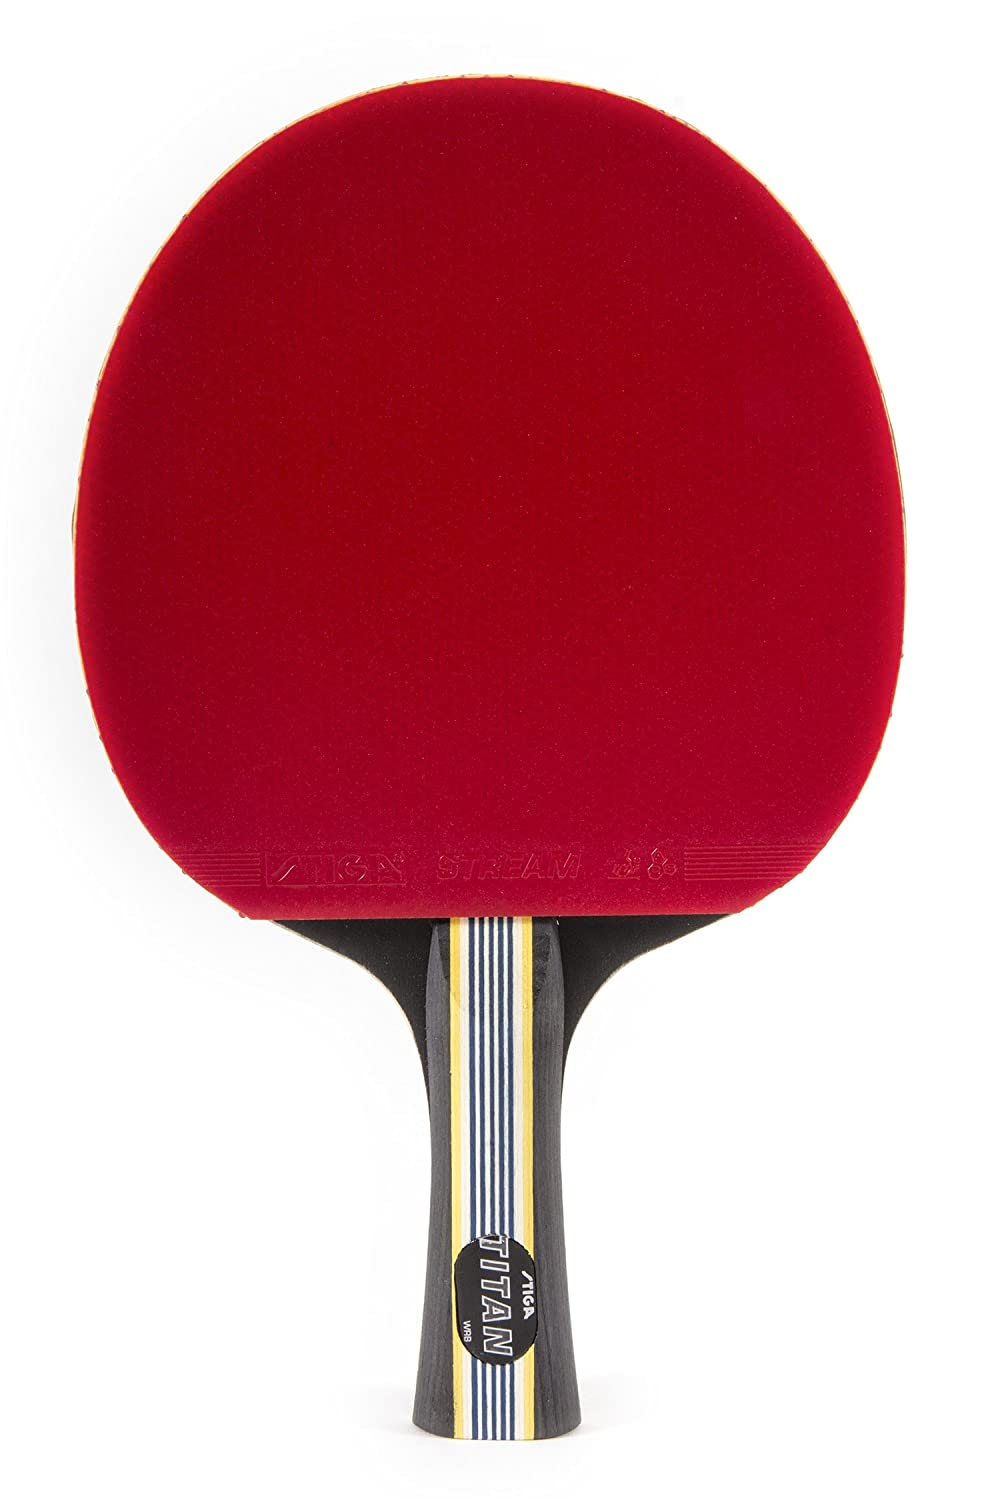 Amazon.com : STIGA Titan Table Tennis Racket : Ping Pong Paddle : Sports U0026  Outdoors